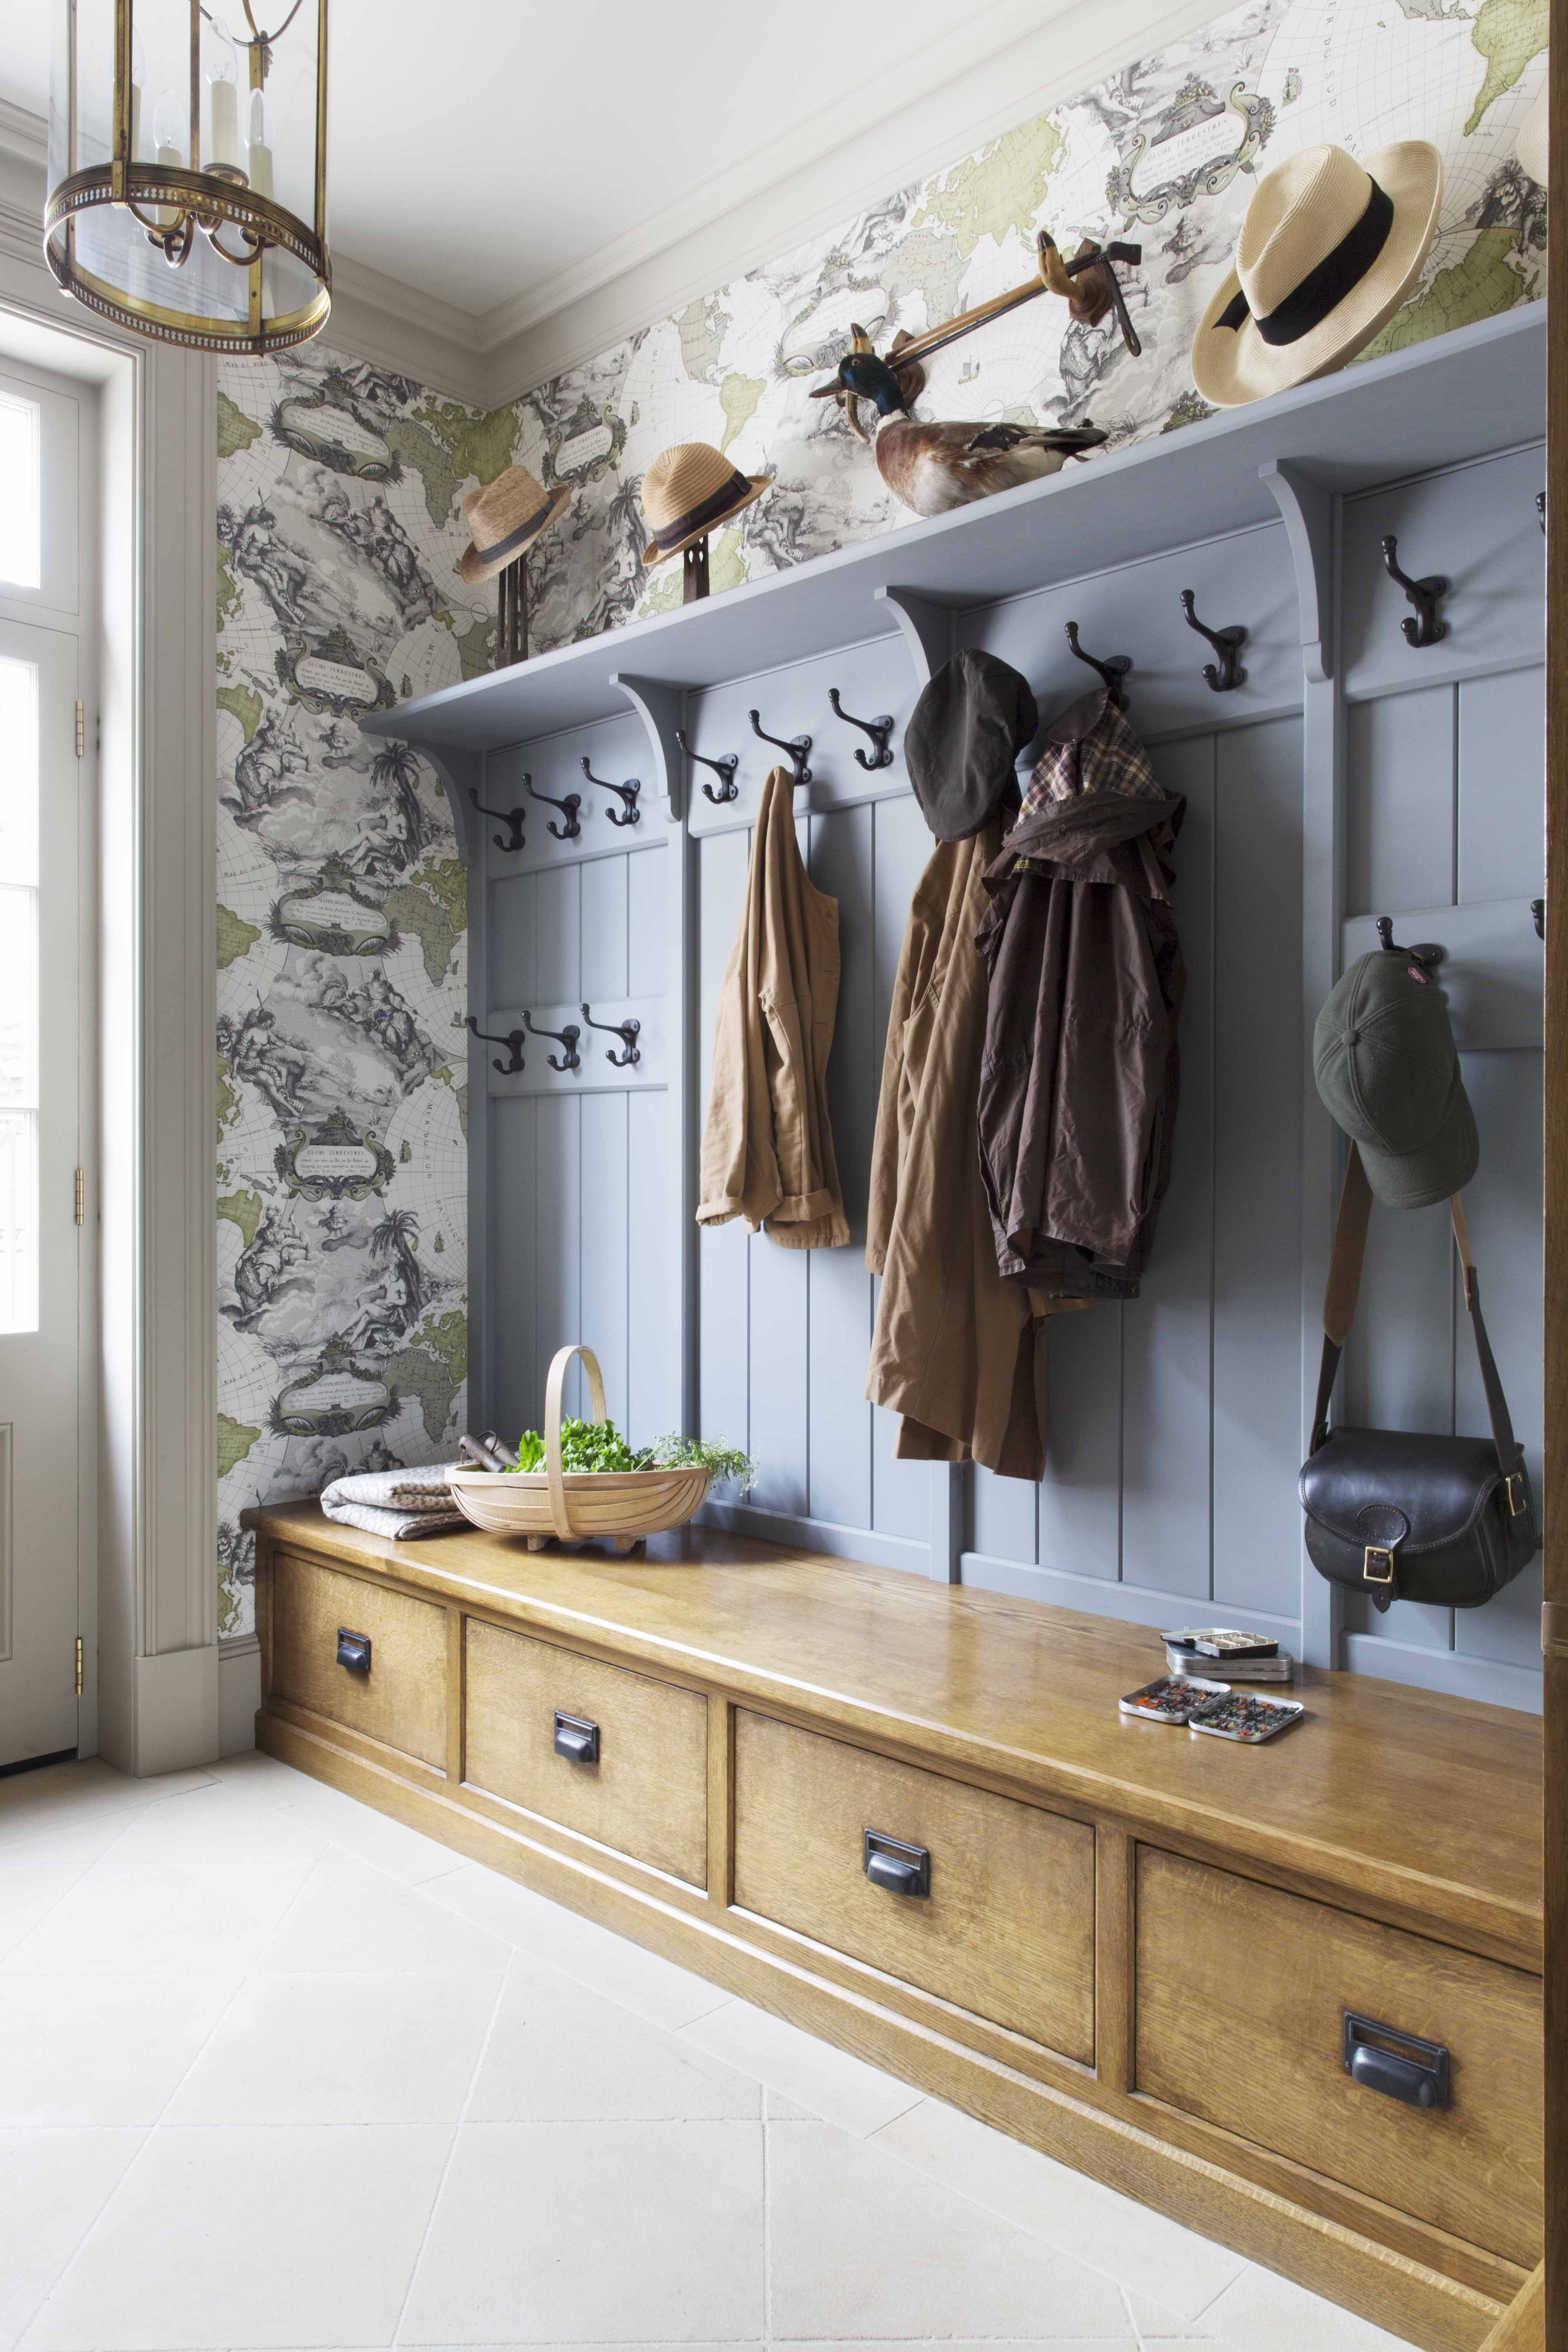 Room And House Decor Pictures: Painted And Timber Traditional Period Boot Room Designed